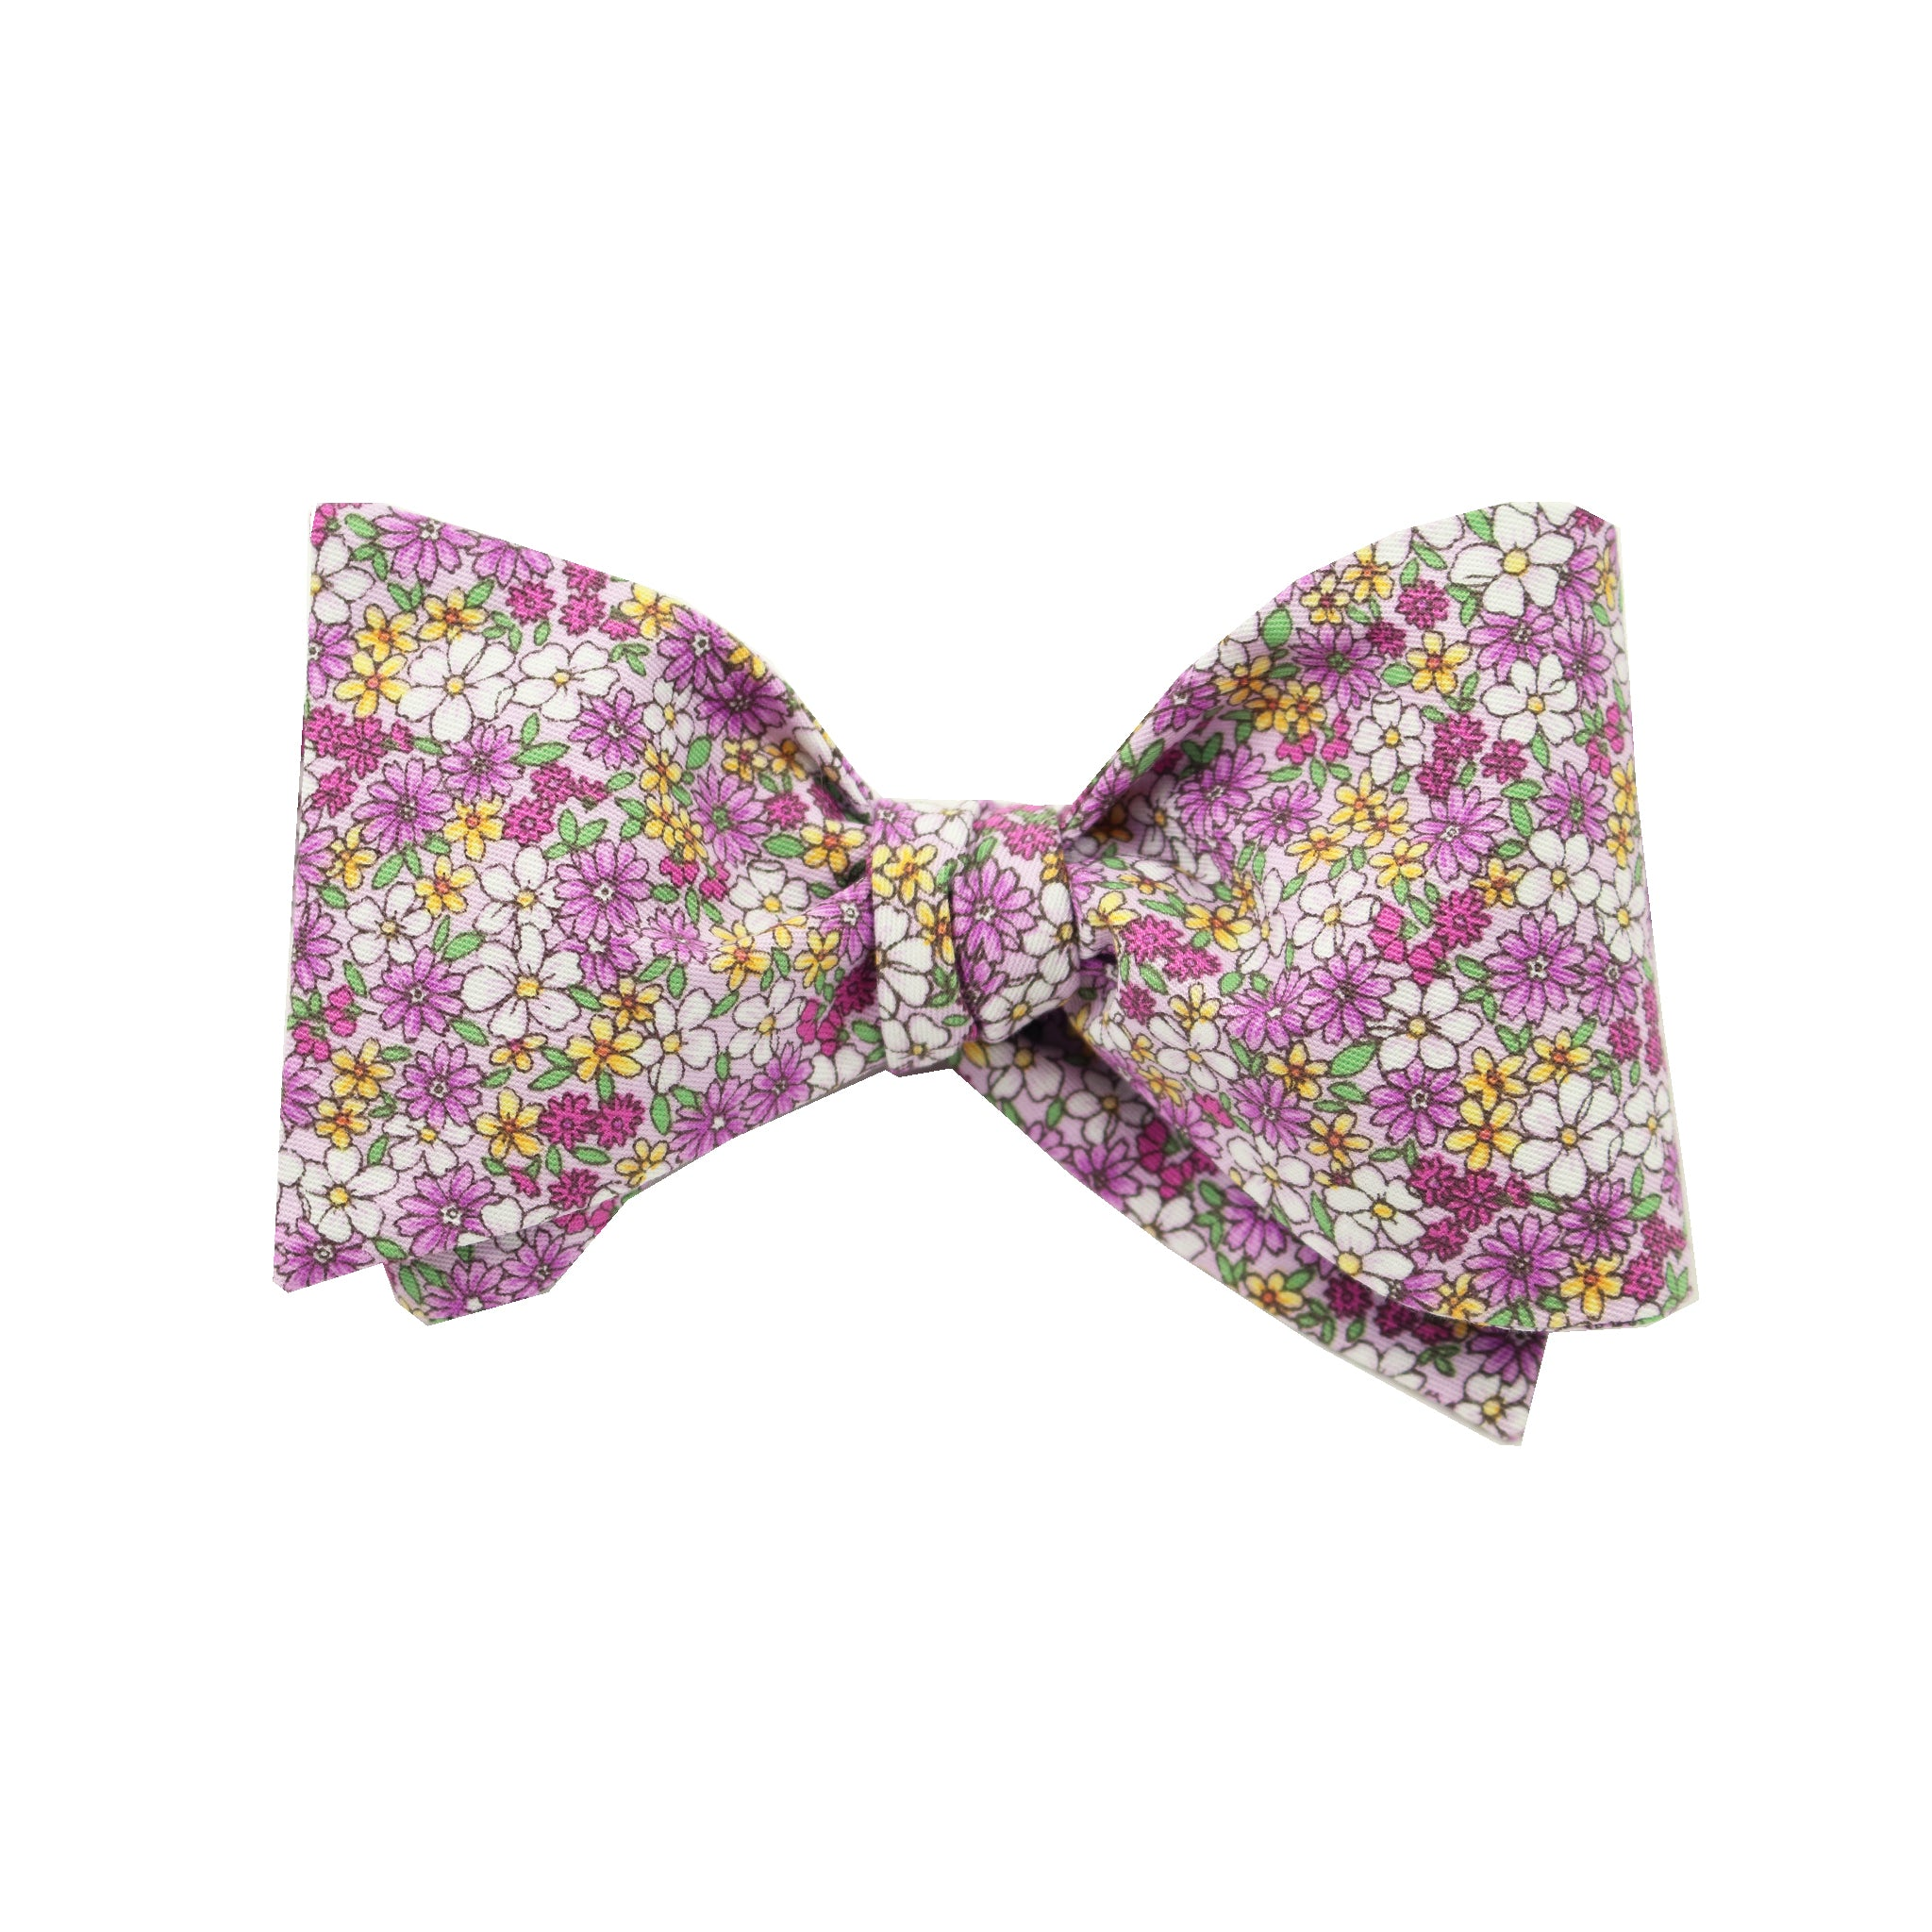 Purple Micro Floral Print Cotton Self Tie Bow Tie